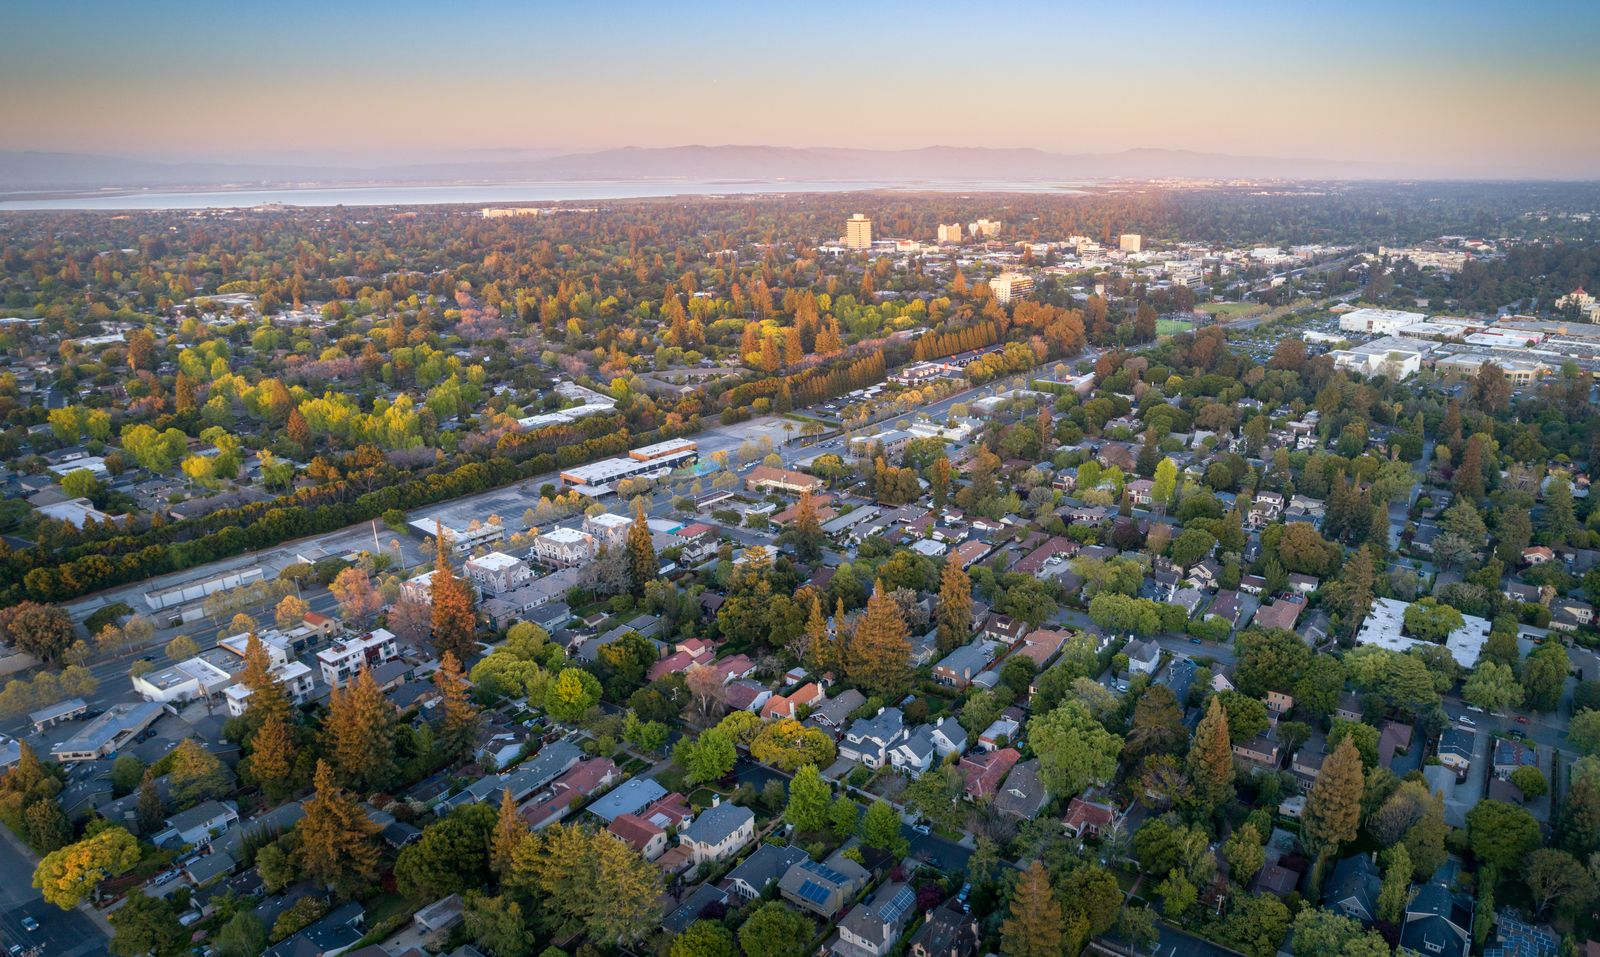 Aerial: Menlo Park suburbs in Silicon Valley at sunset